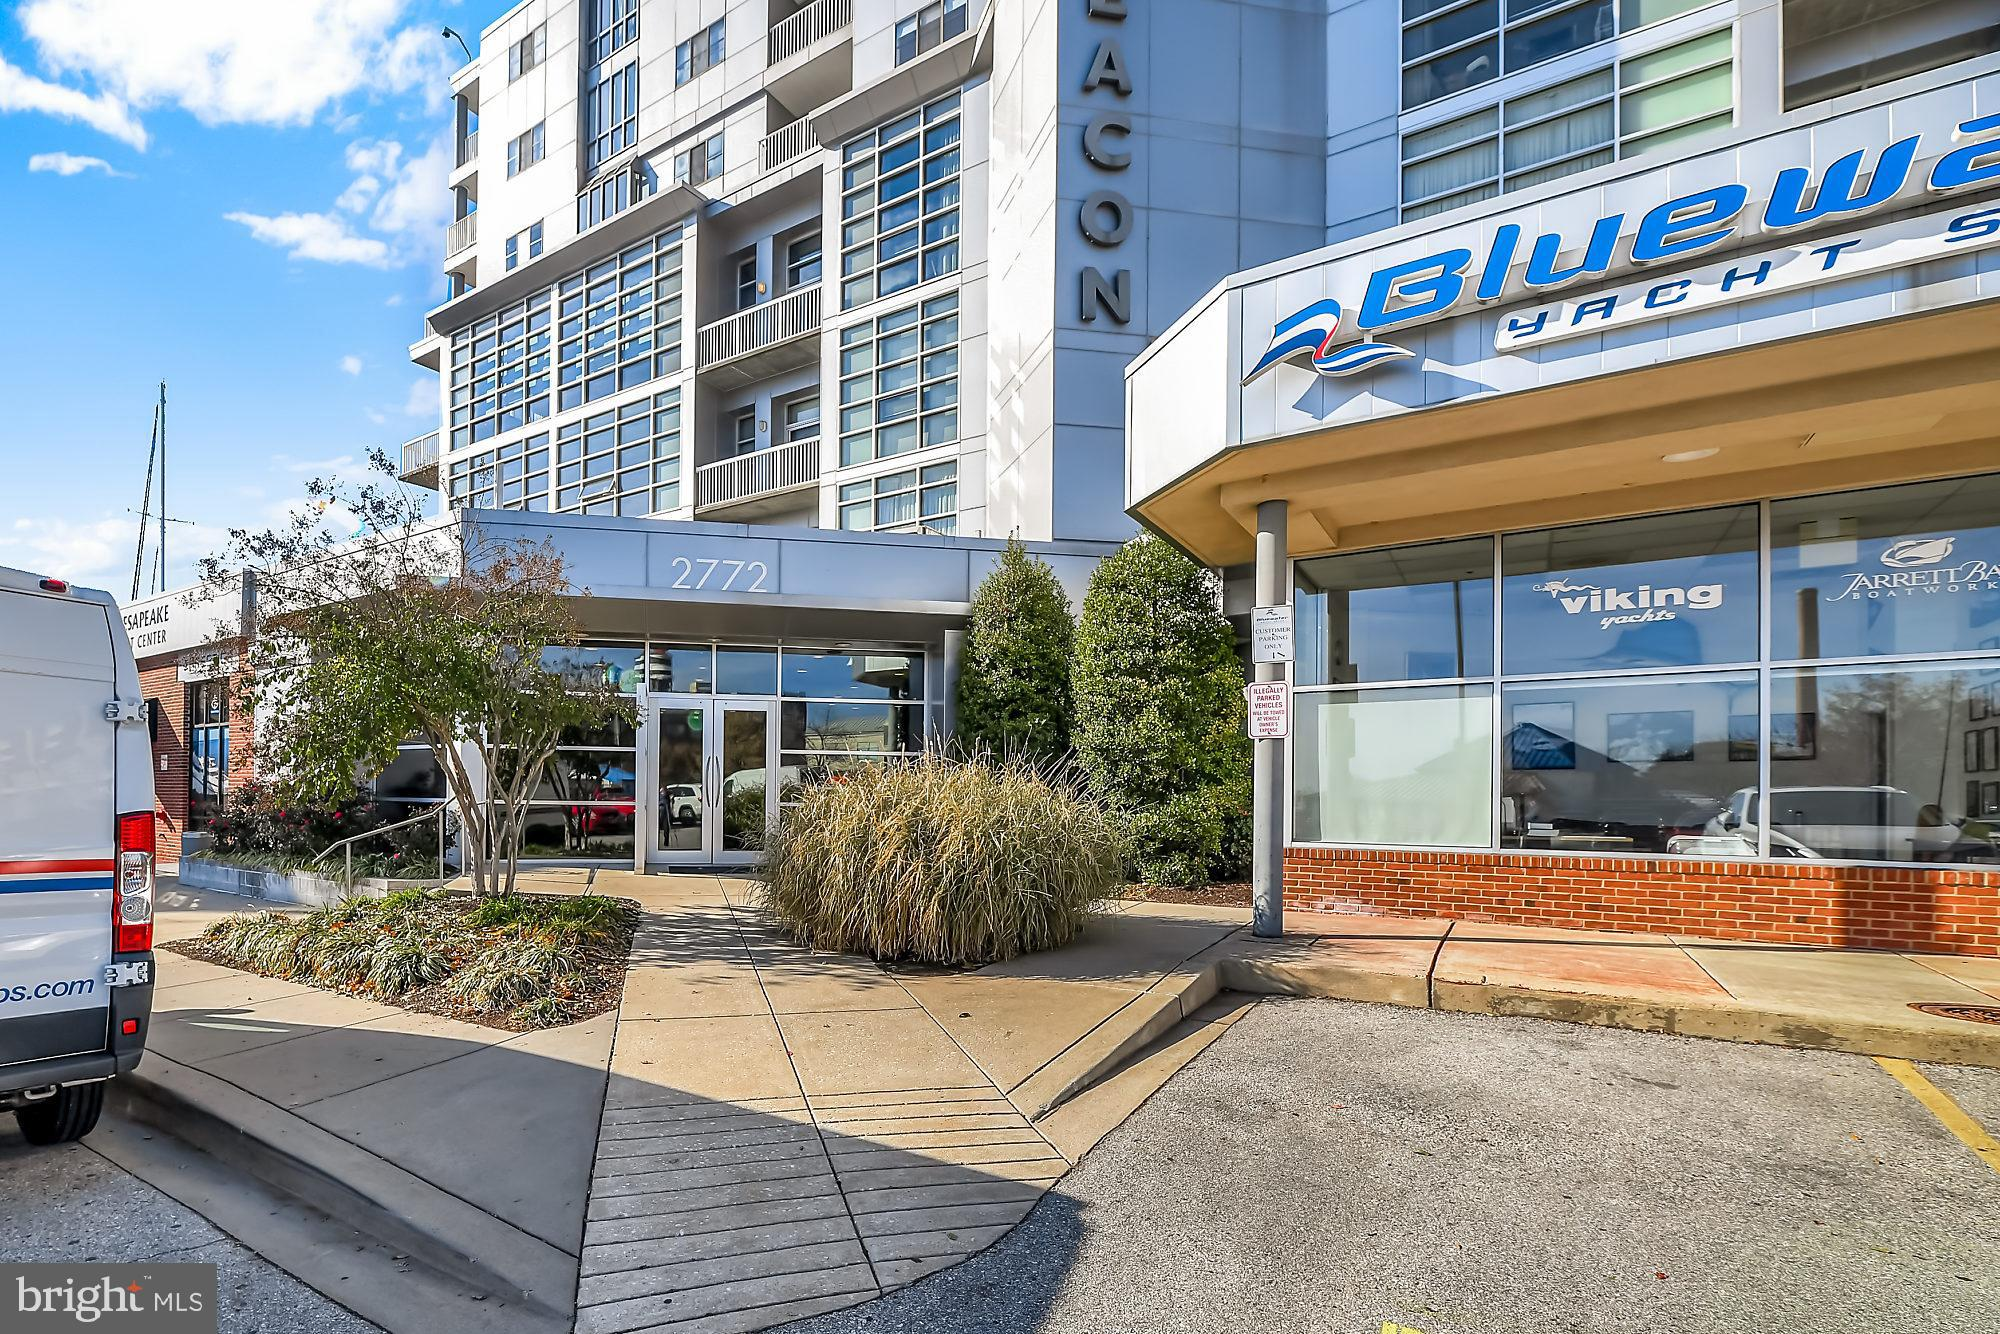 This 2BR/2BA condo is located in one of the most sought after WATERFRONT buildings in the area with breathtaking views from the living room and bedrooms! The unit comes with 2 secure garage parking spaces (on the same level as the unit). Gorgeous wide open floor plan with slate floors, over $10K in window treatments convey, floor to ceiling windows, upgraded chef's kitchen, stone countertops, stainless appliances, plenty of cabinet and storage space. 24 hour security, doorman, walk to restaurants, nightlife, shopping. Convenient to downtown, I83, and I95. Discount access to pool across the parking lot and $25 one time fee to join new fitness center.